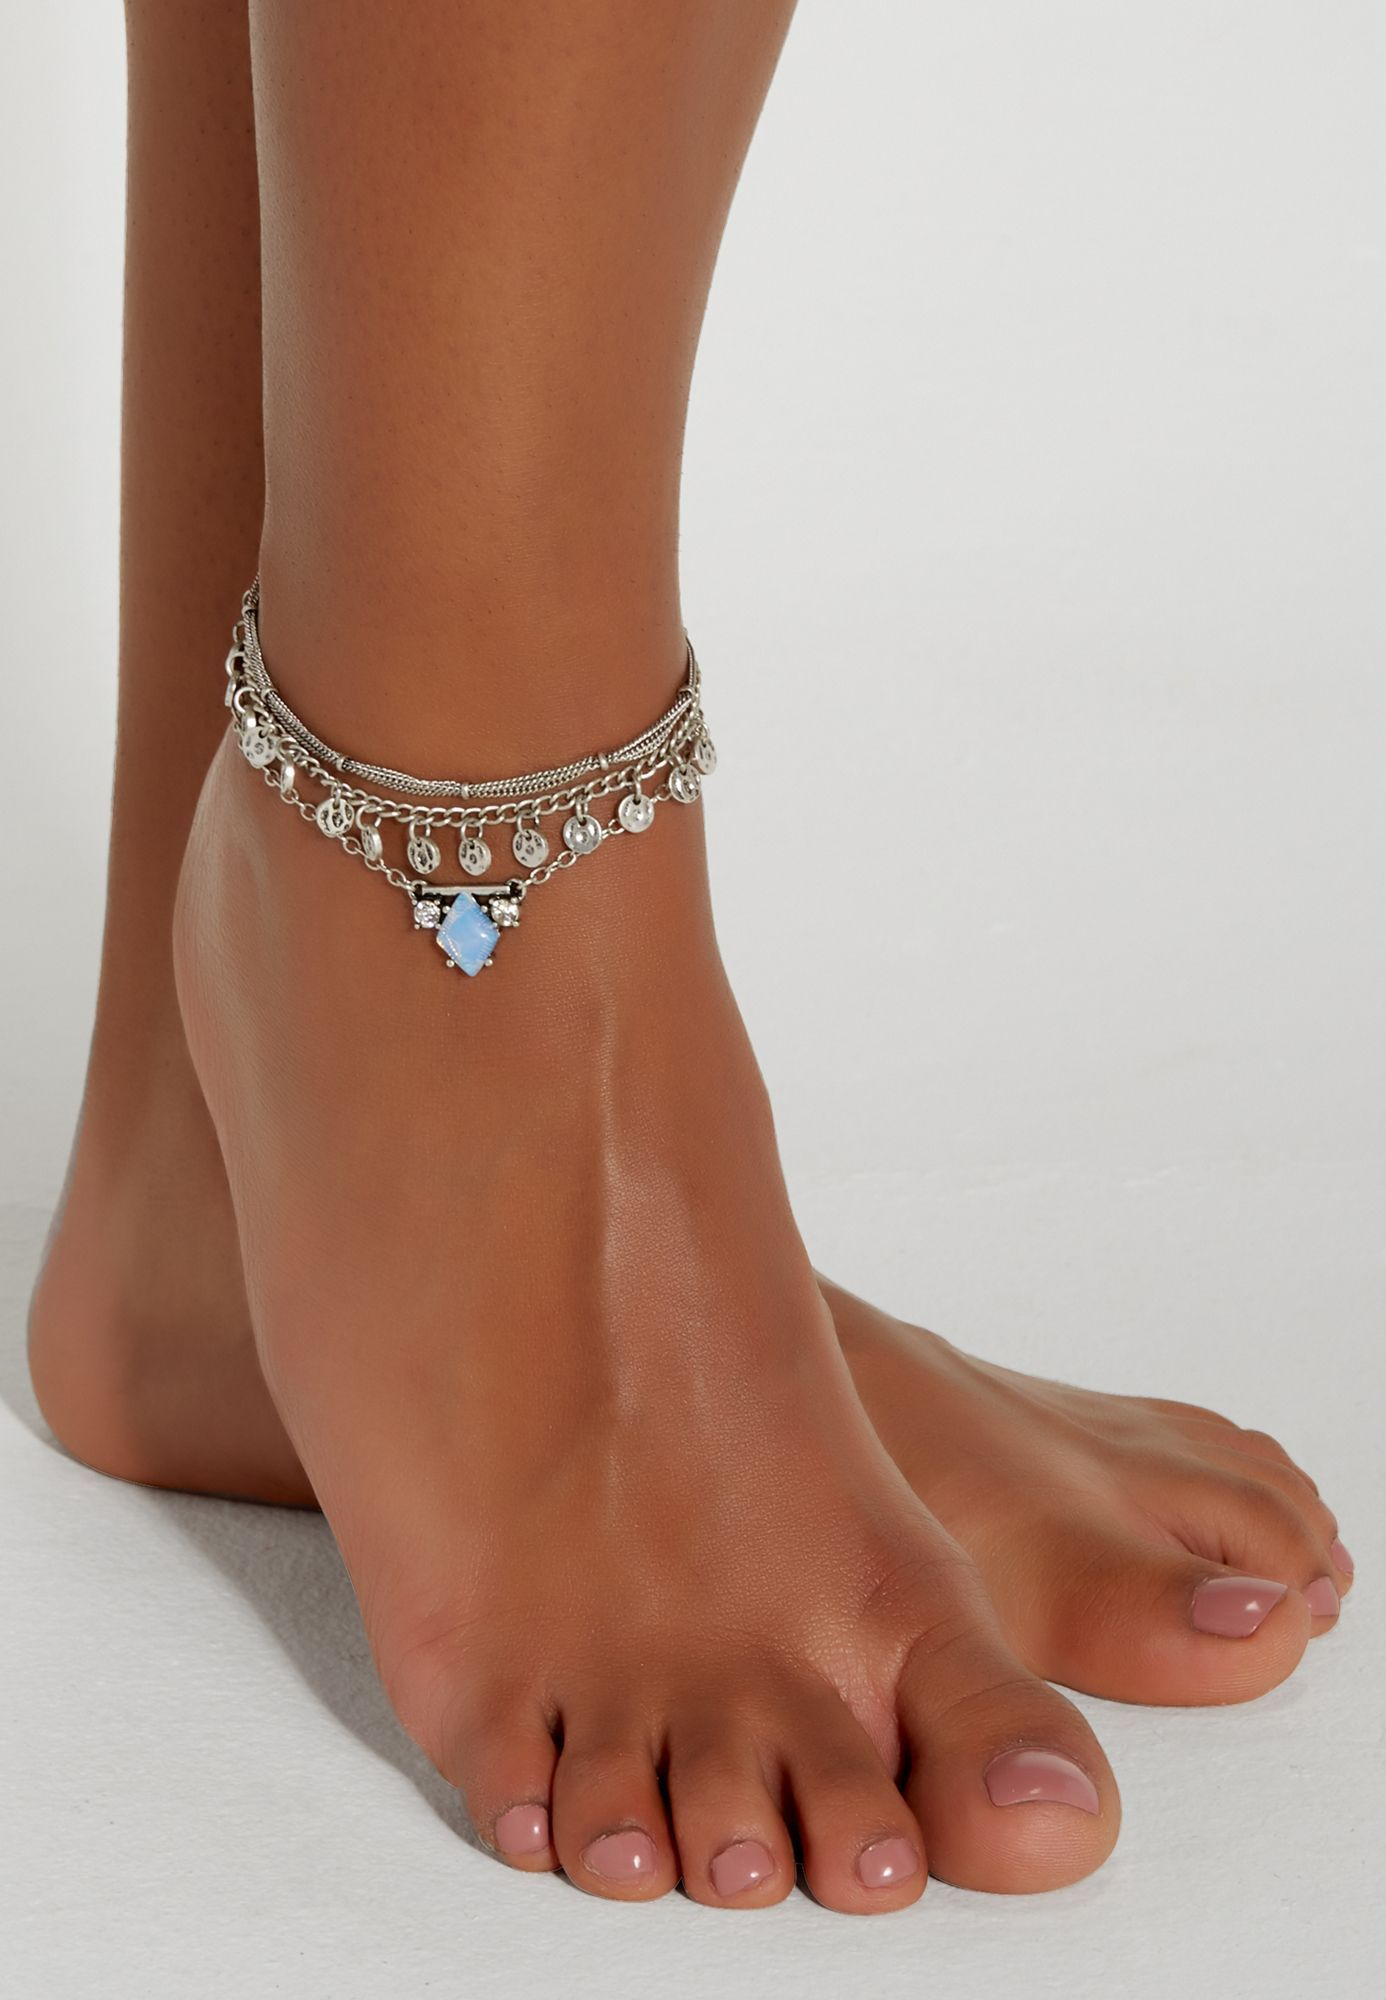 unbranded puffed plated anklets ankle jewelry silver women find prices from and compare fine beach watches heart anklet fashion online generic bracelet s offers